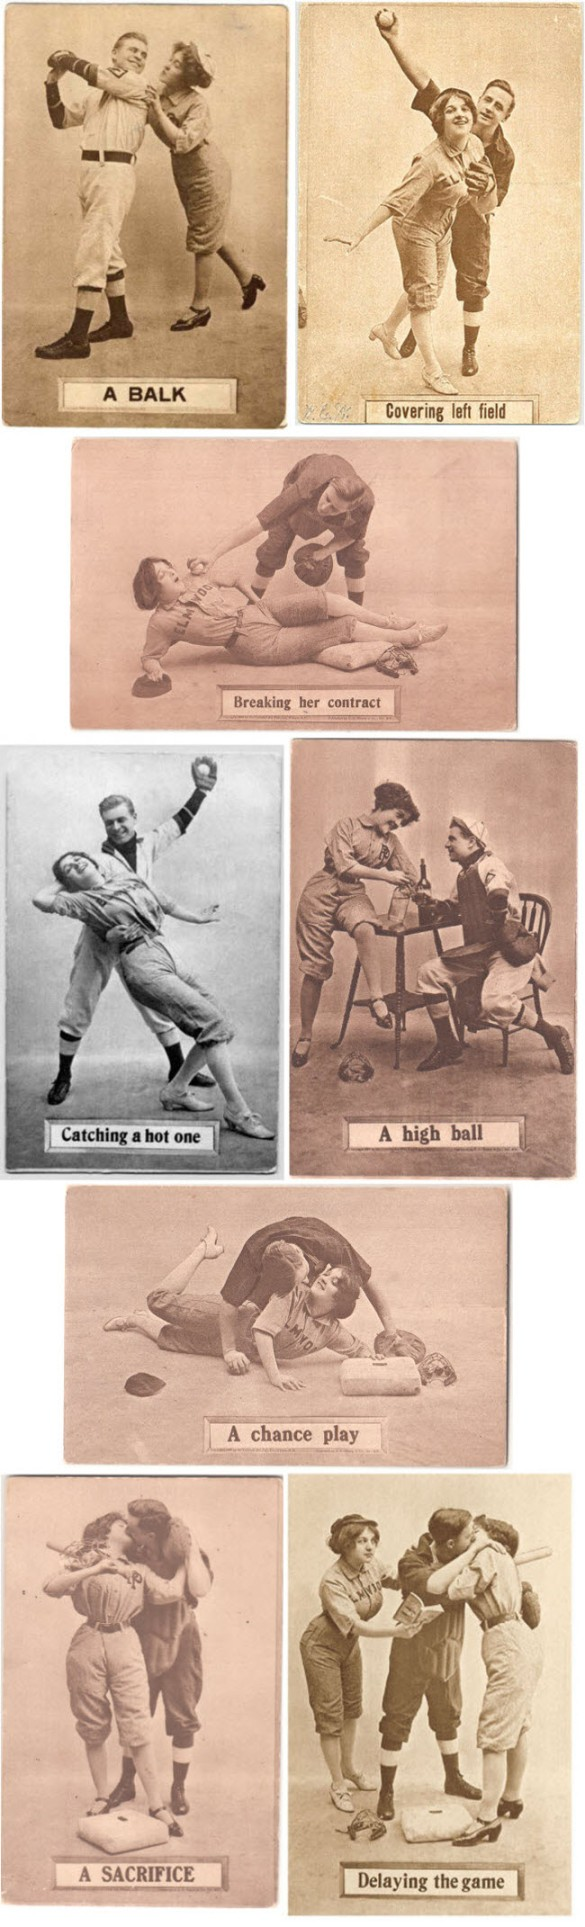 Vintage baseball comic postcards